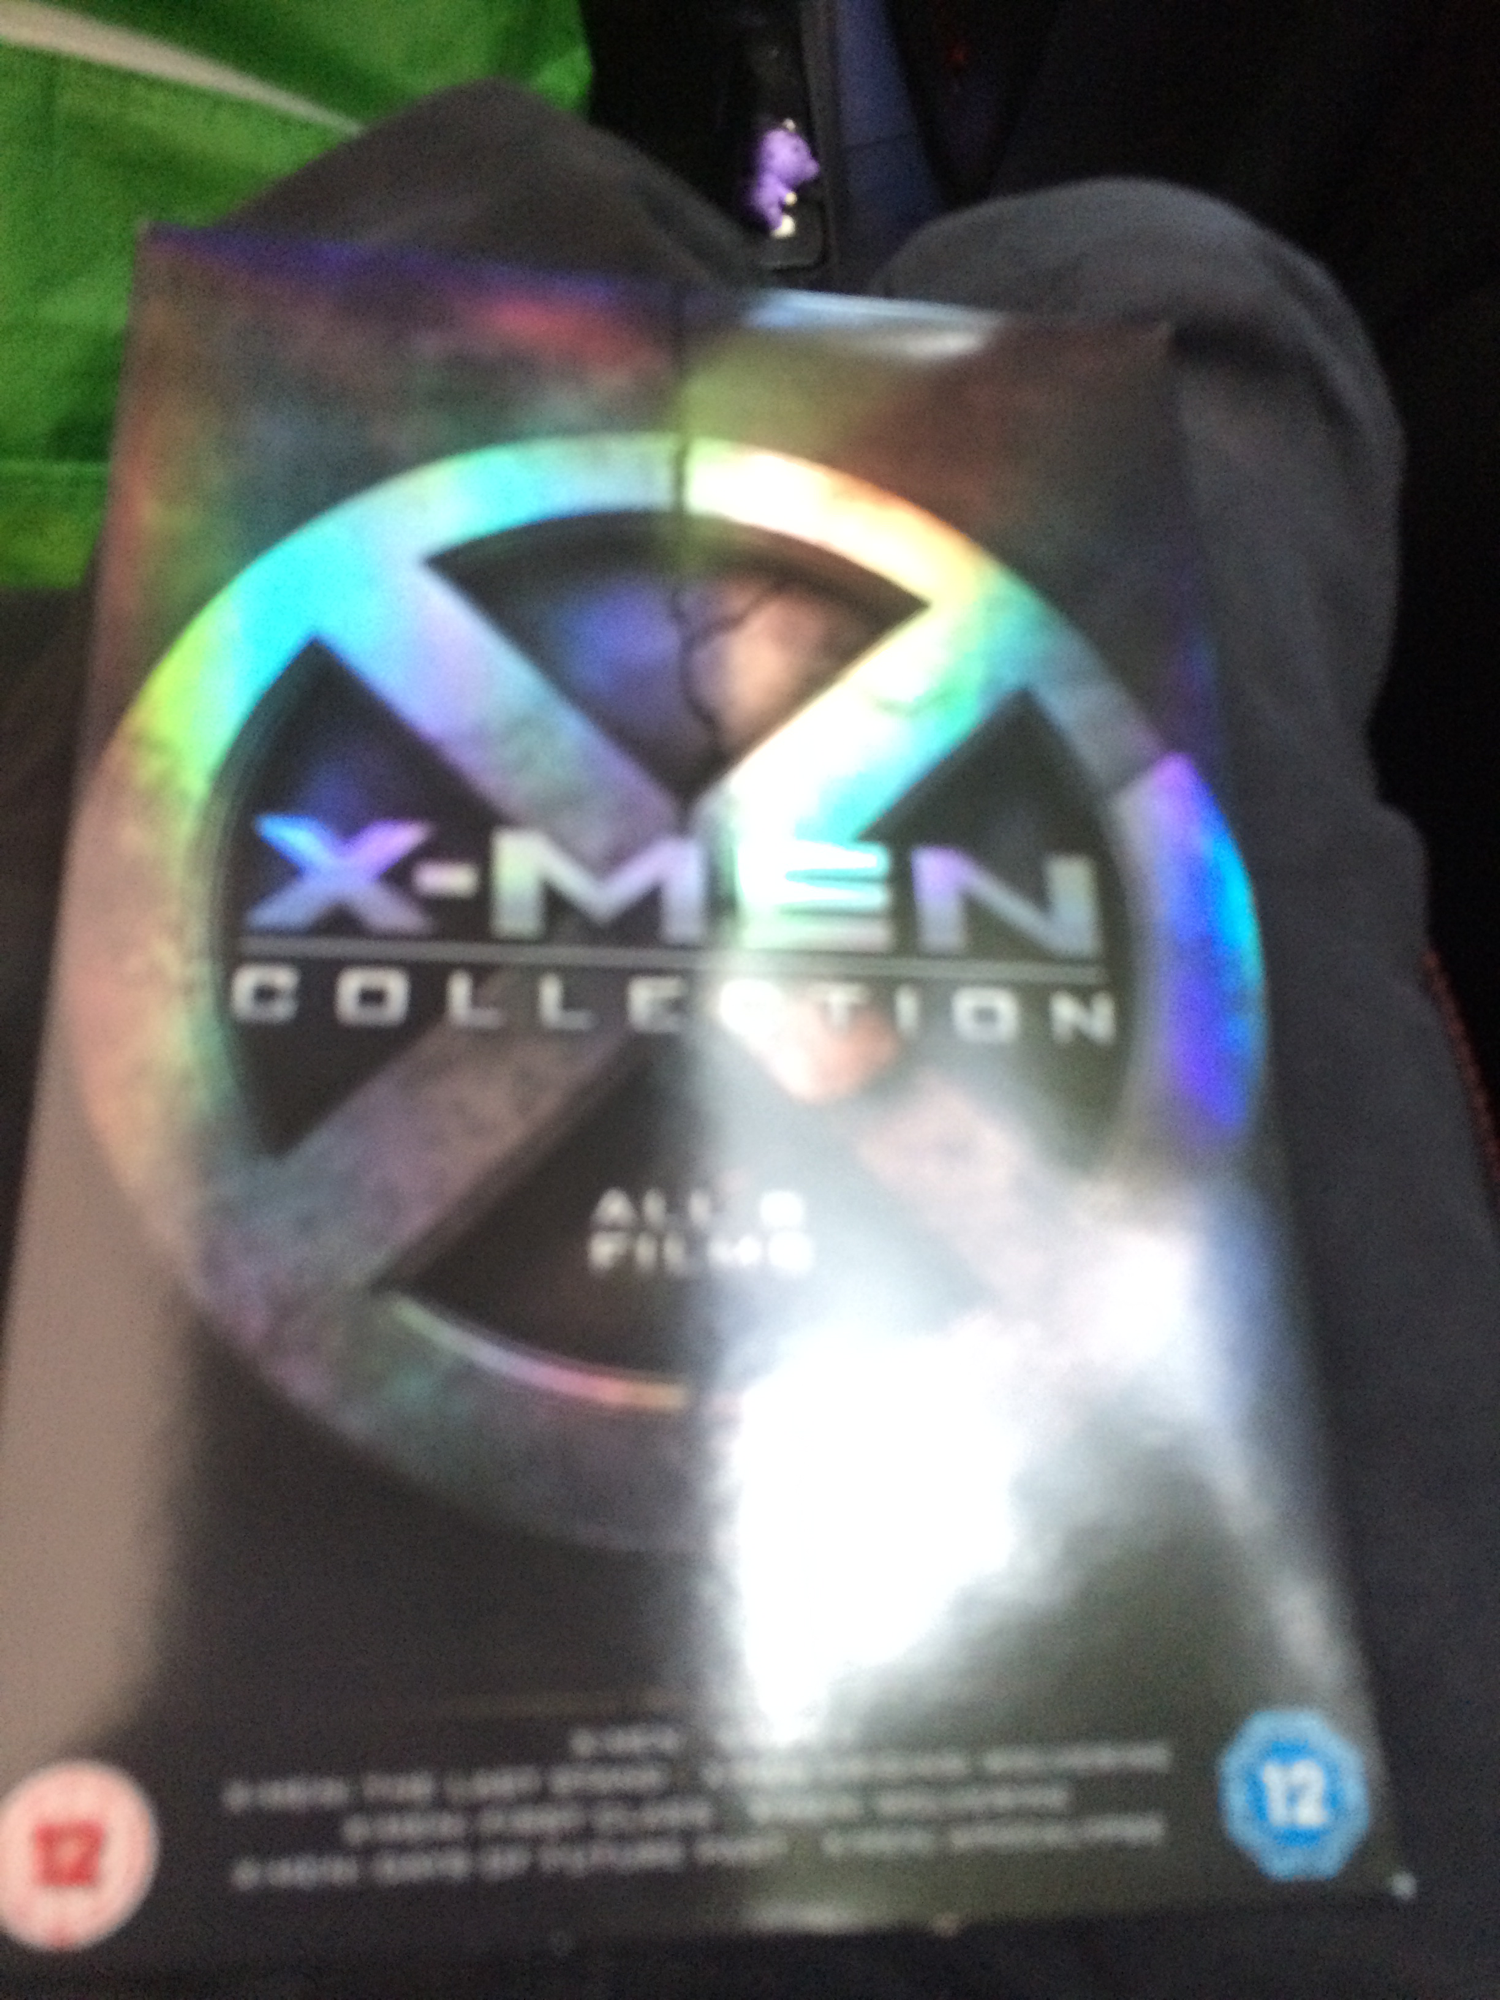 Hi I'm new to this fandom and I just got this box set to watch all the movies